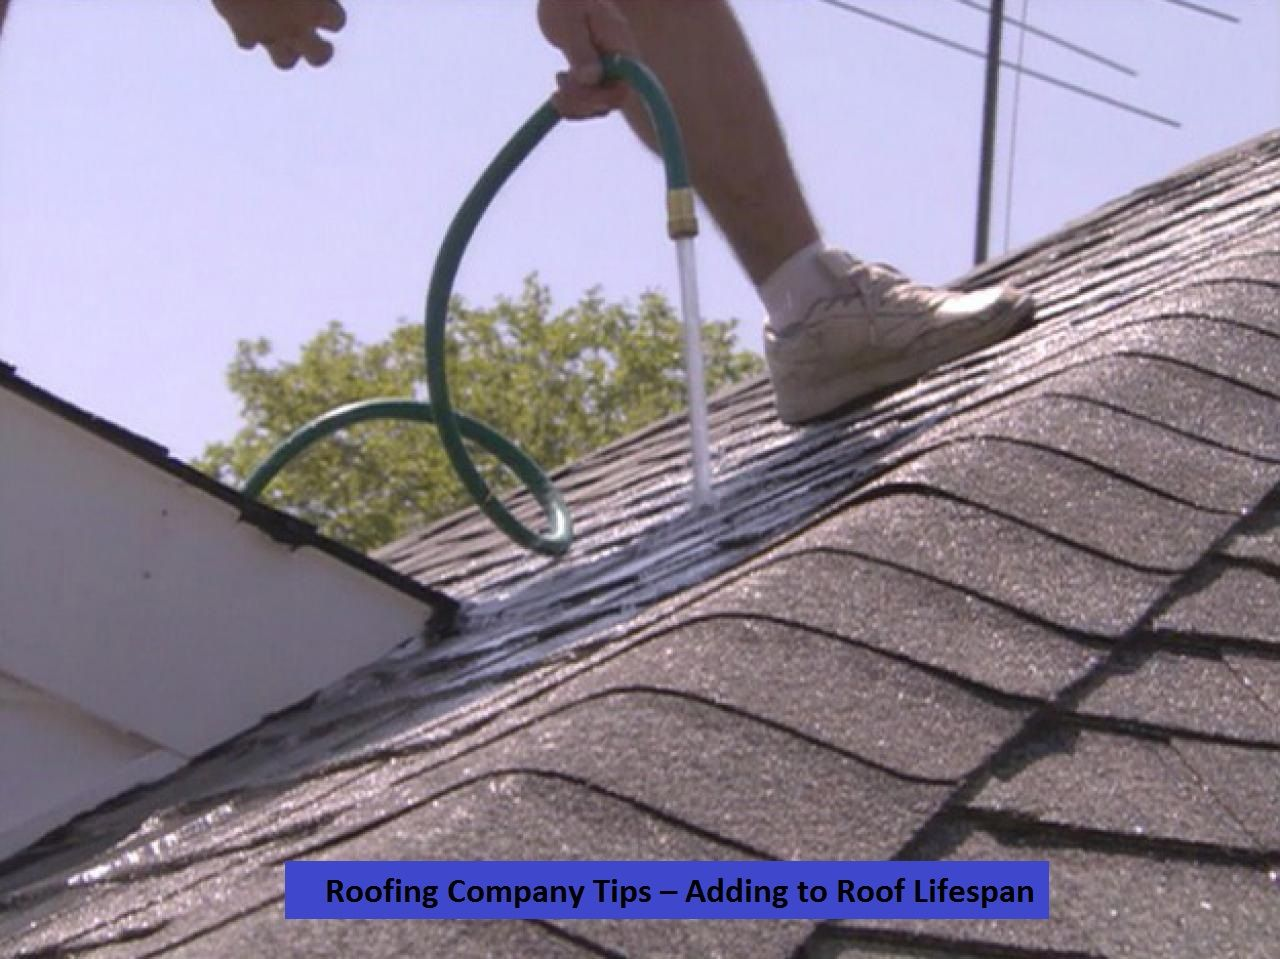 Roofing Company Tips Adding To Roof Lifespan No Homeowner Wants To Contact Their Roofing Company For A Premature Roof Replacement Not Only Is It A Huge Expen